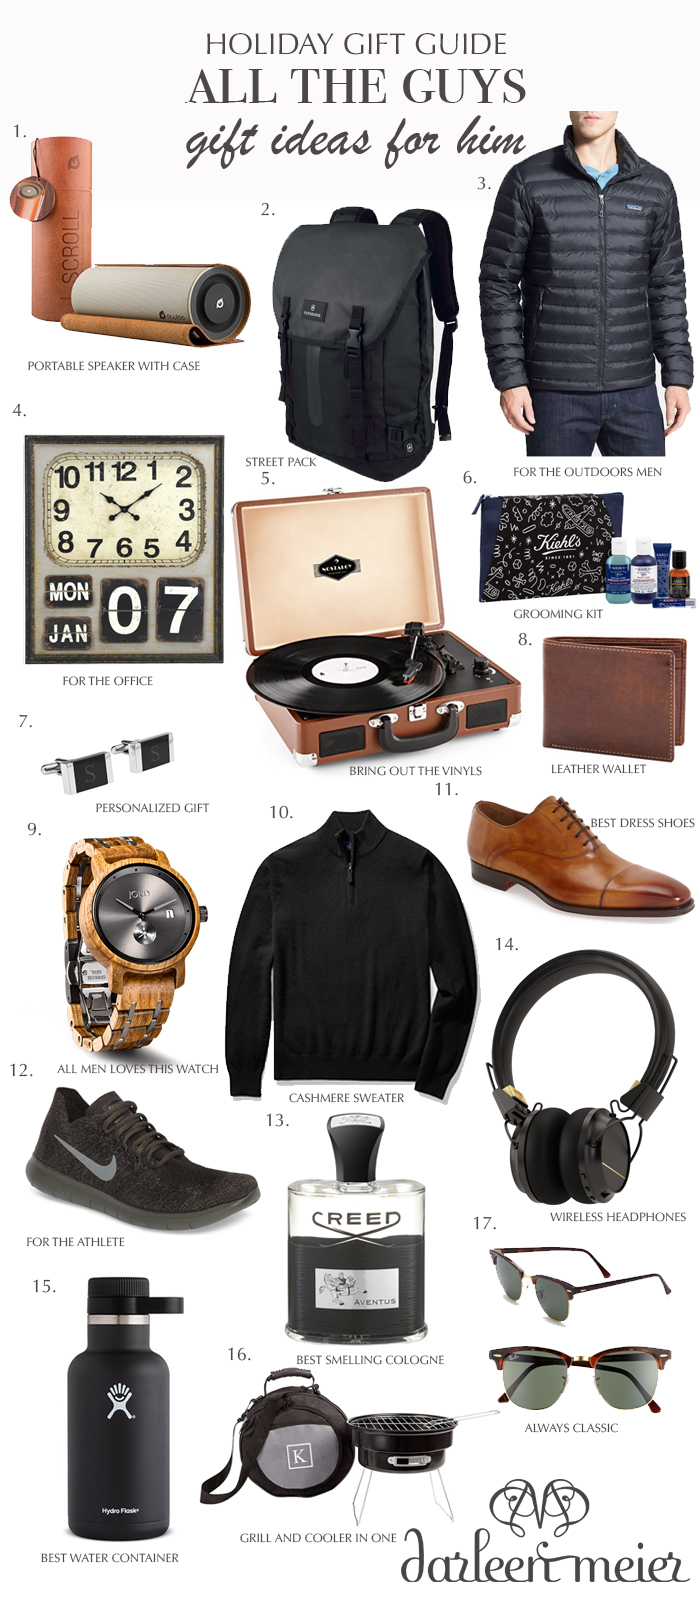 holiday gift guide for him, holiday gift guide for the guys, outdoors men, outdoor, athlete, business men, Latham interiors designs, Patagonia, sudio headphones, nike, hydro flask, vinyls, mens holiday gift guides, gift ideas for him